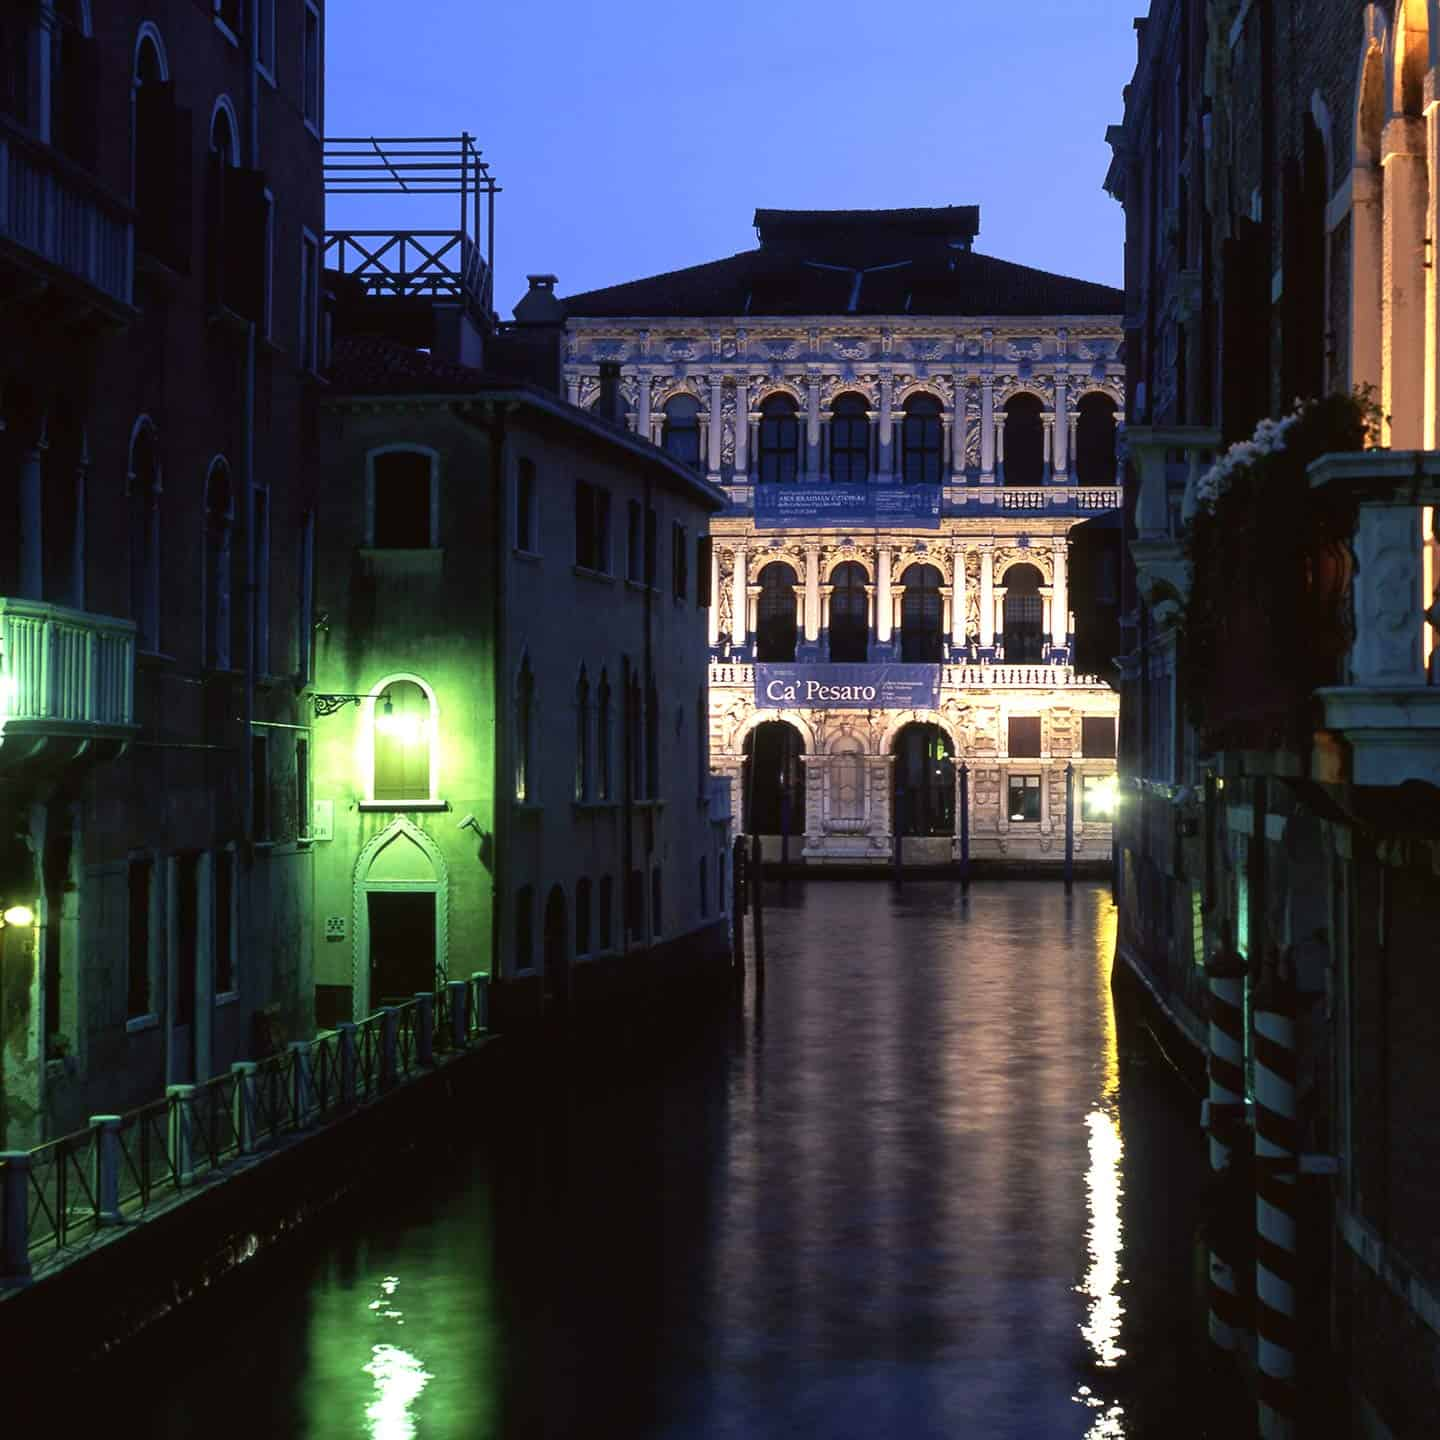 Image of Ca' Pesaro palace on the Grand Canal in Venice Italy